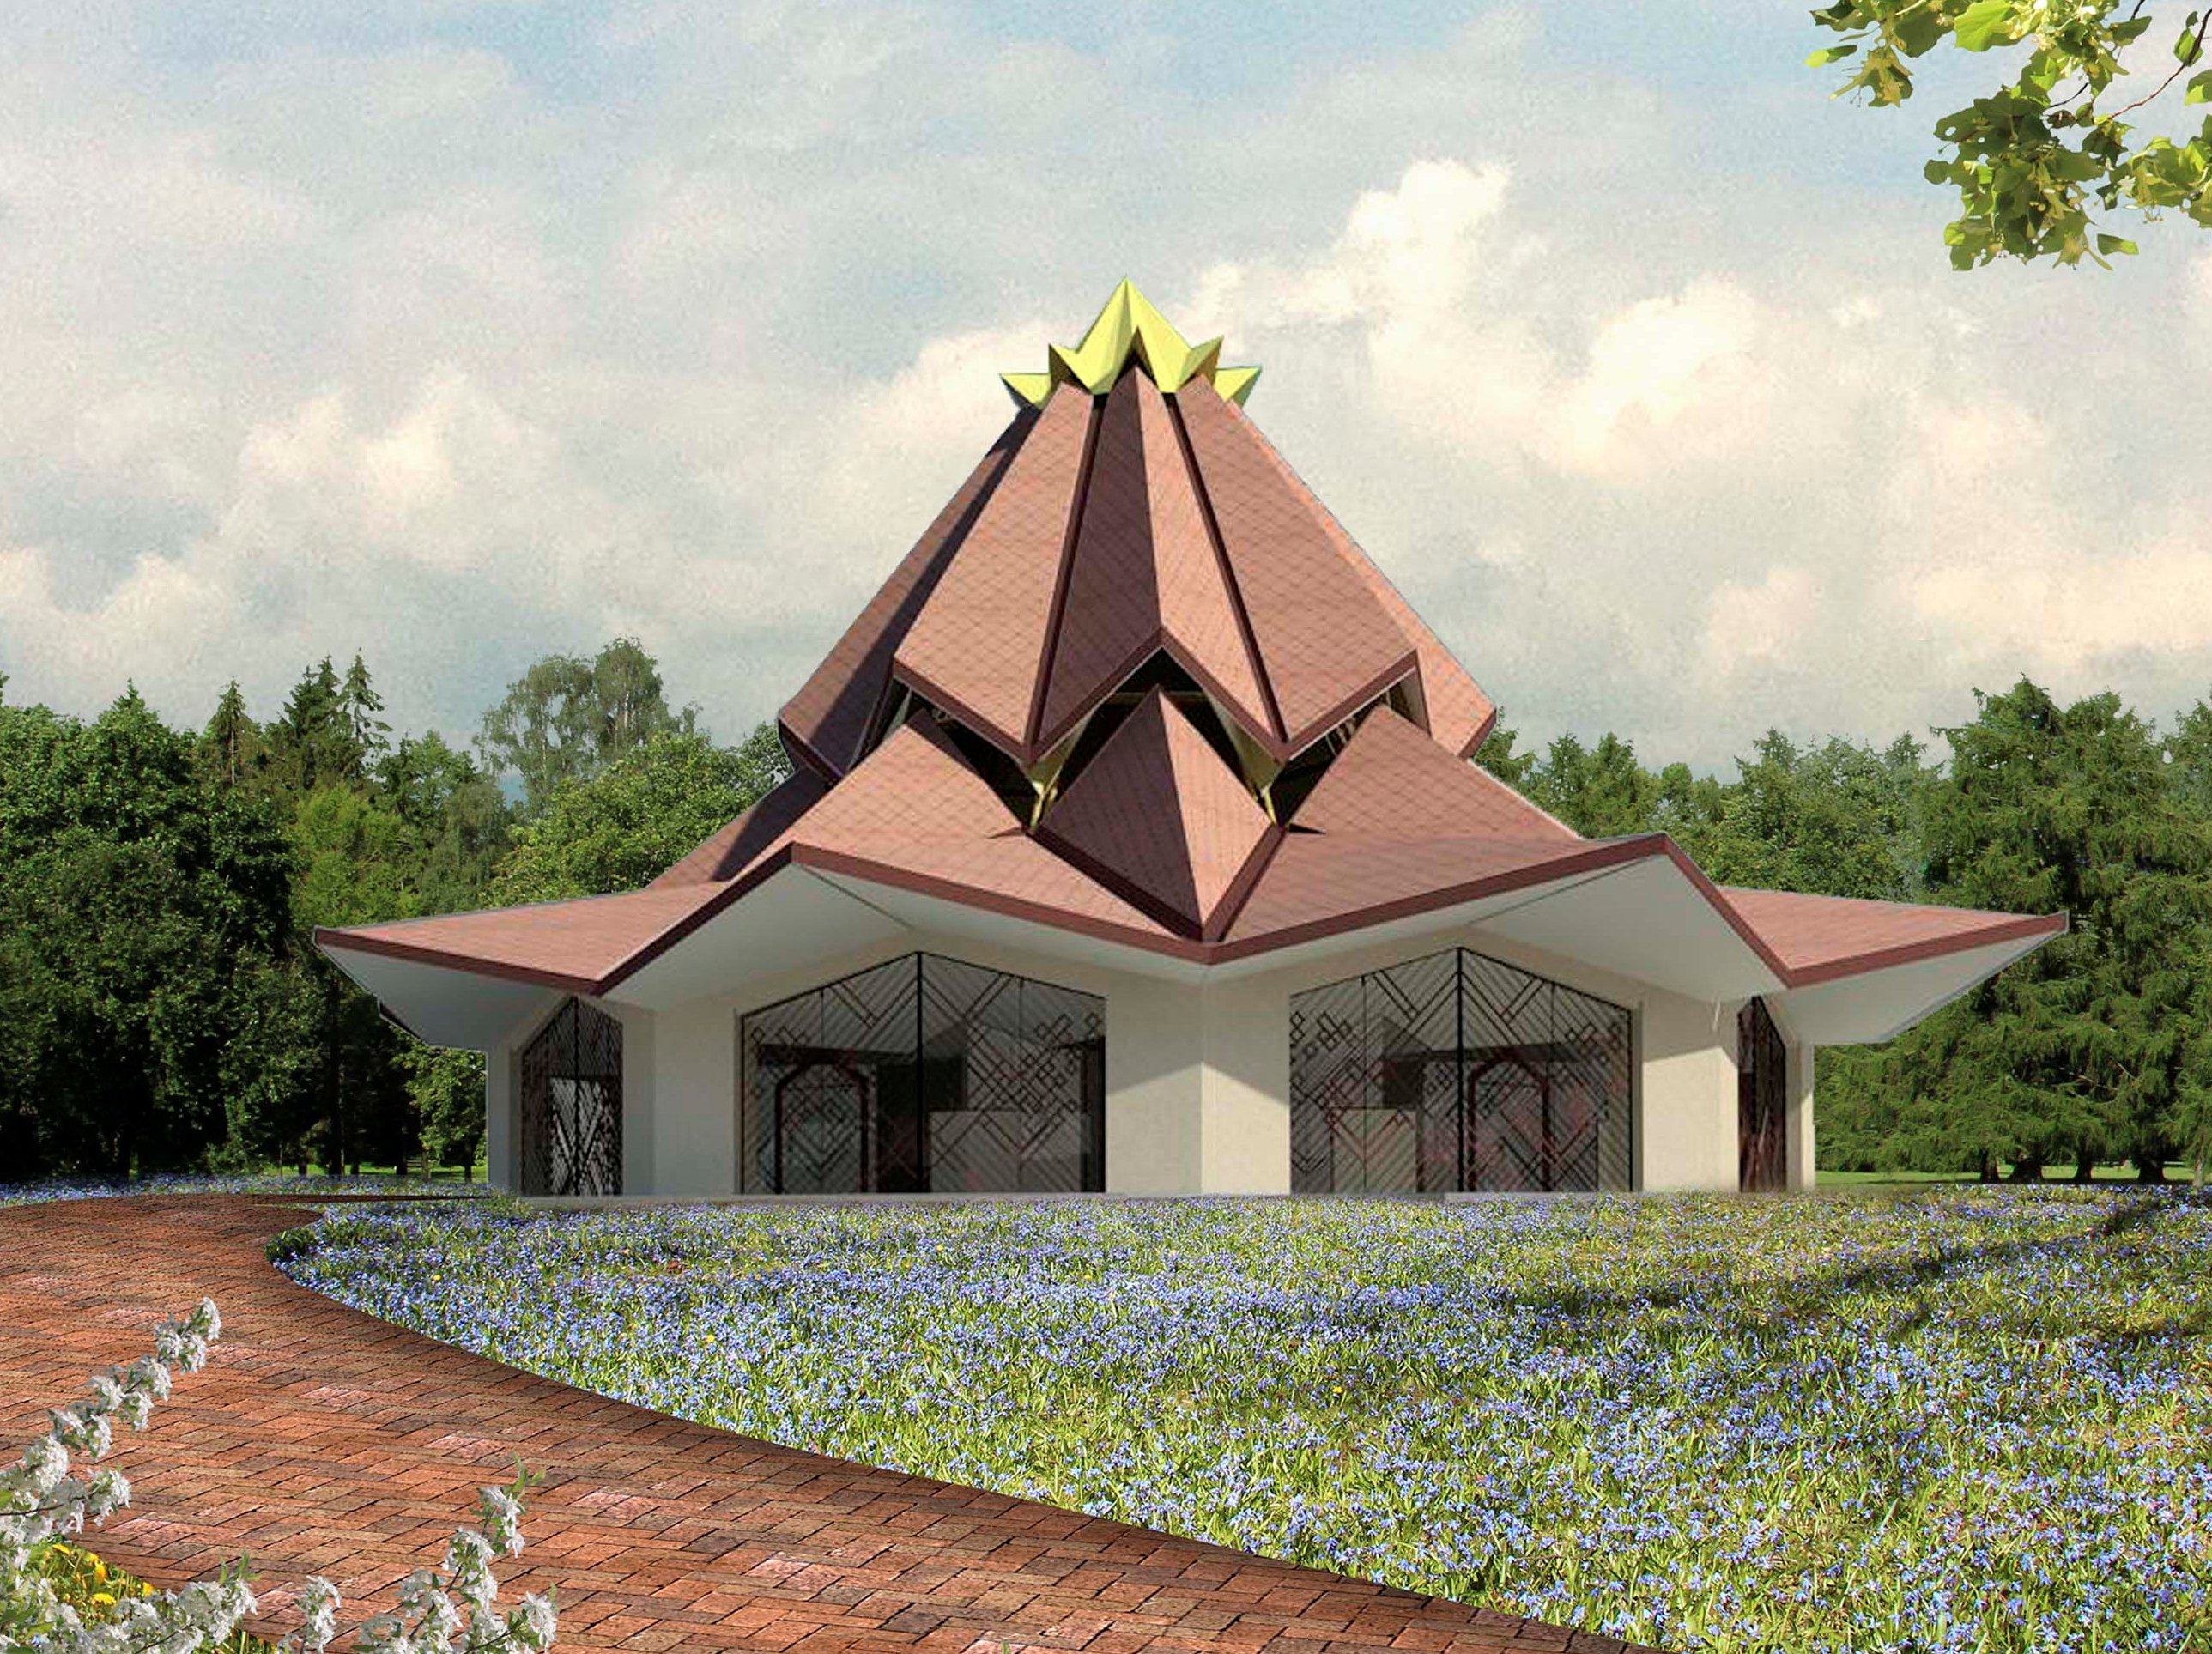 design of colombian house of worship unveiled bah world news service bwns - Local Home Designers